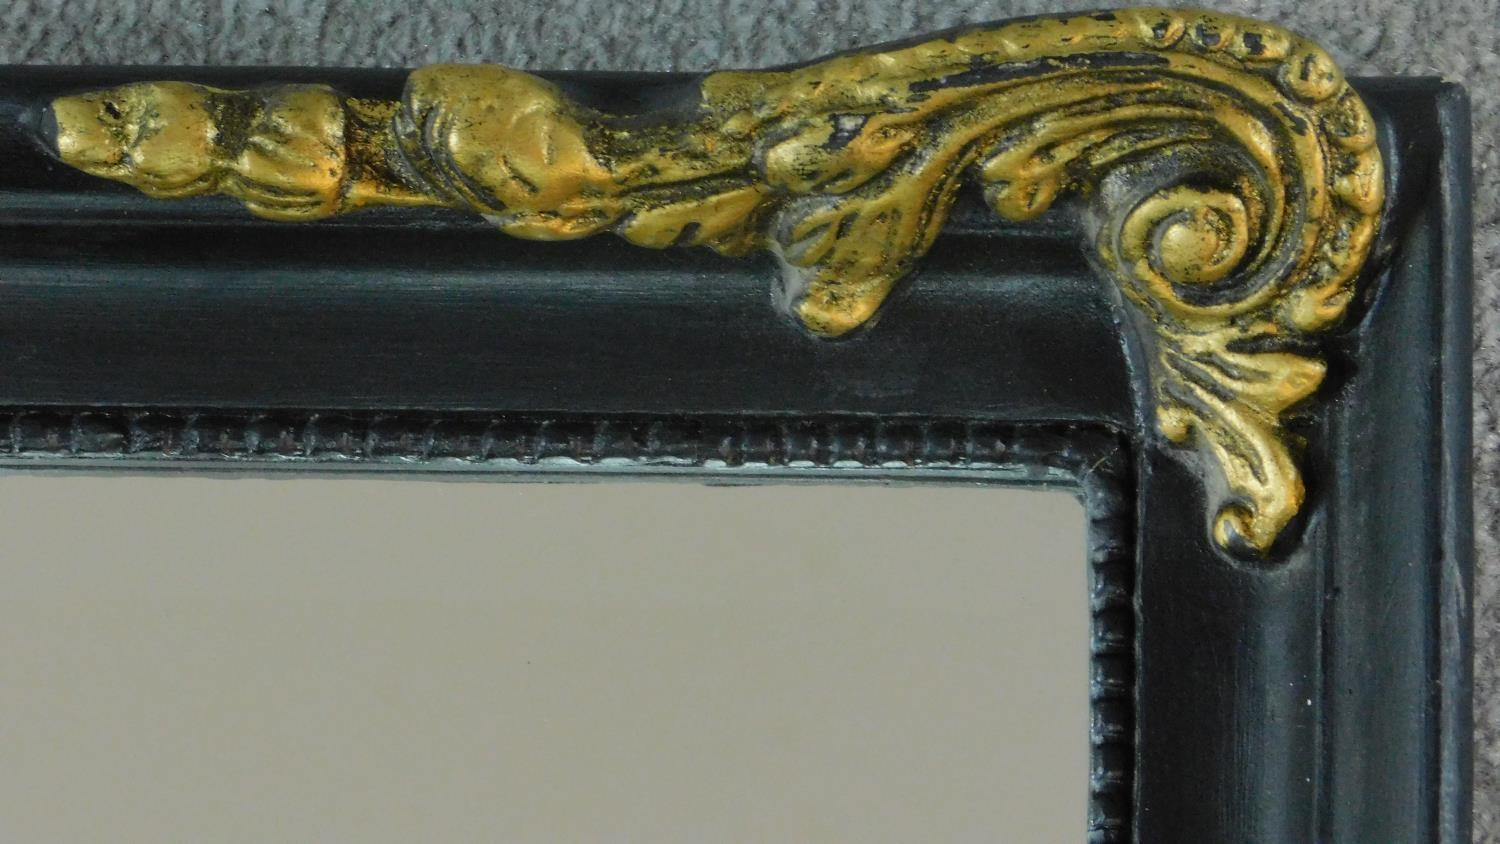 A rococo style gilt and ebonised pier mirror. 115x52cm - Image 2 of 4